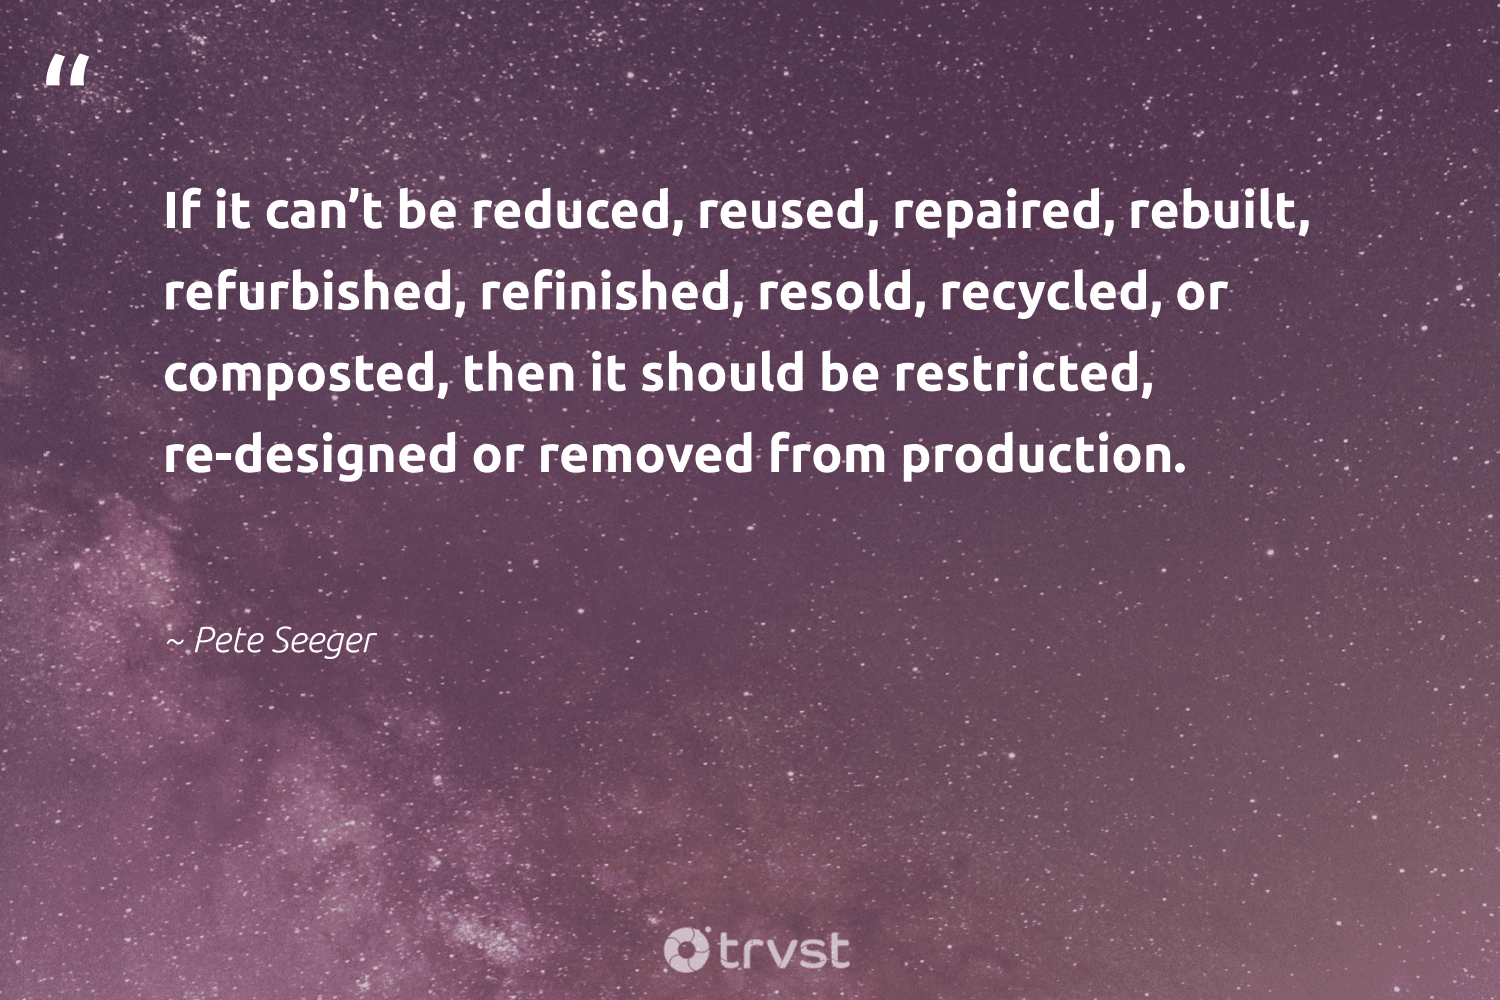 """""""If it can't be reduced, reused, repaired, rebuilt, refurbished, refinished, resold, recycled, or composted, then it should be restricted, re-designed or removed from production.""""  - Pete Seeger #trvst #quotes #recycling #reused #reduced #rebuilt #recycled #refurbished #reducereuserecycle #waste #betterfortheplanet #collectiveaction"""